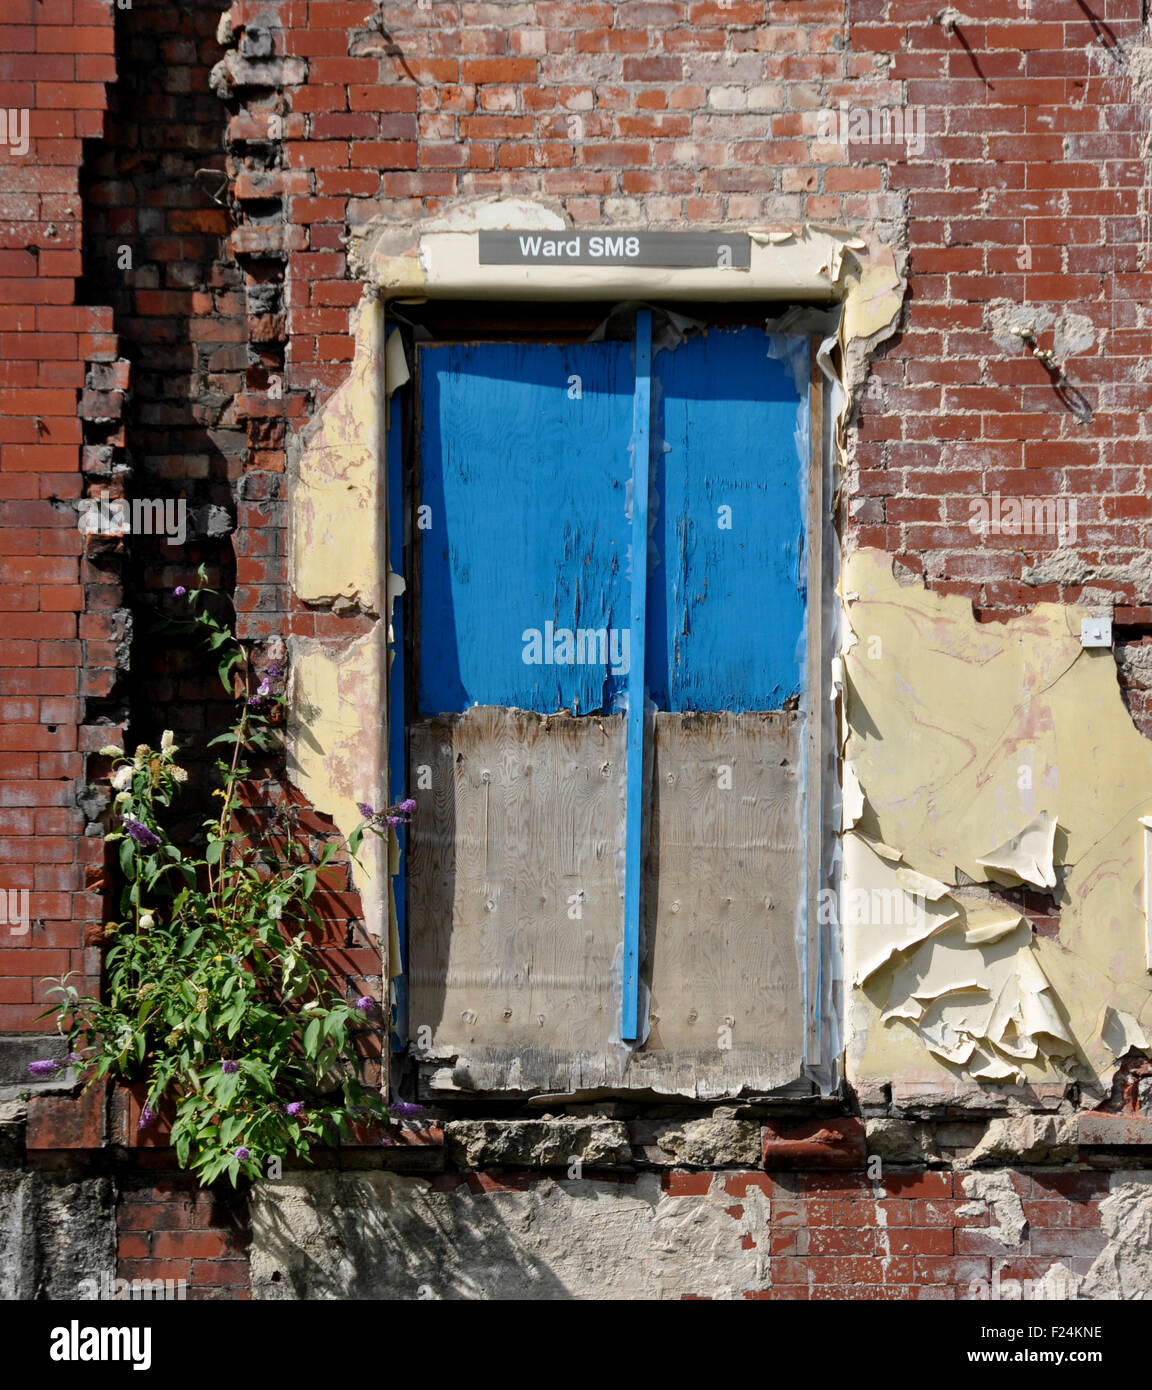 Door formerly in an NHS hospital, showing ward number whilst rest of building has been knocked down. DemonstrateS - Stock Image